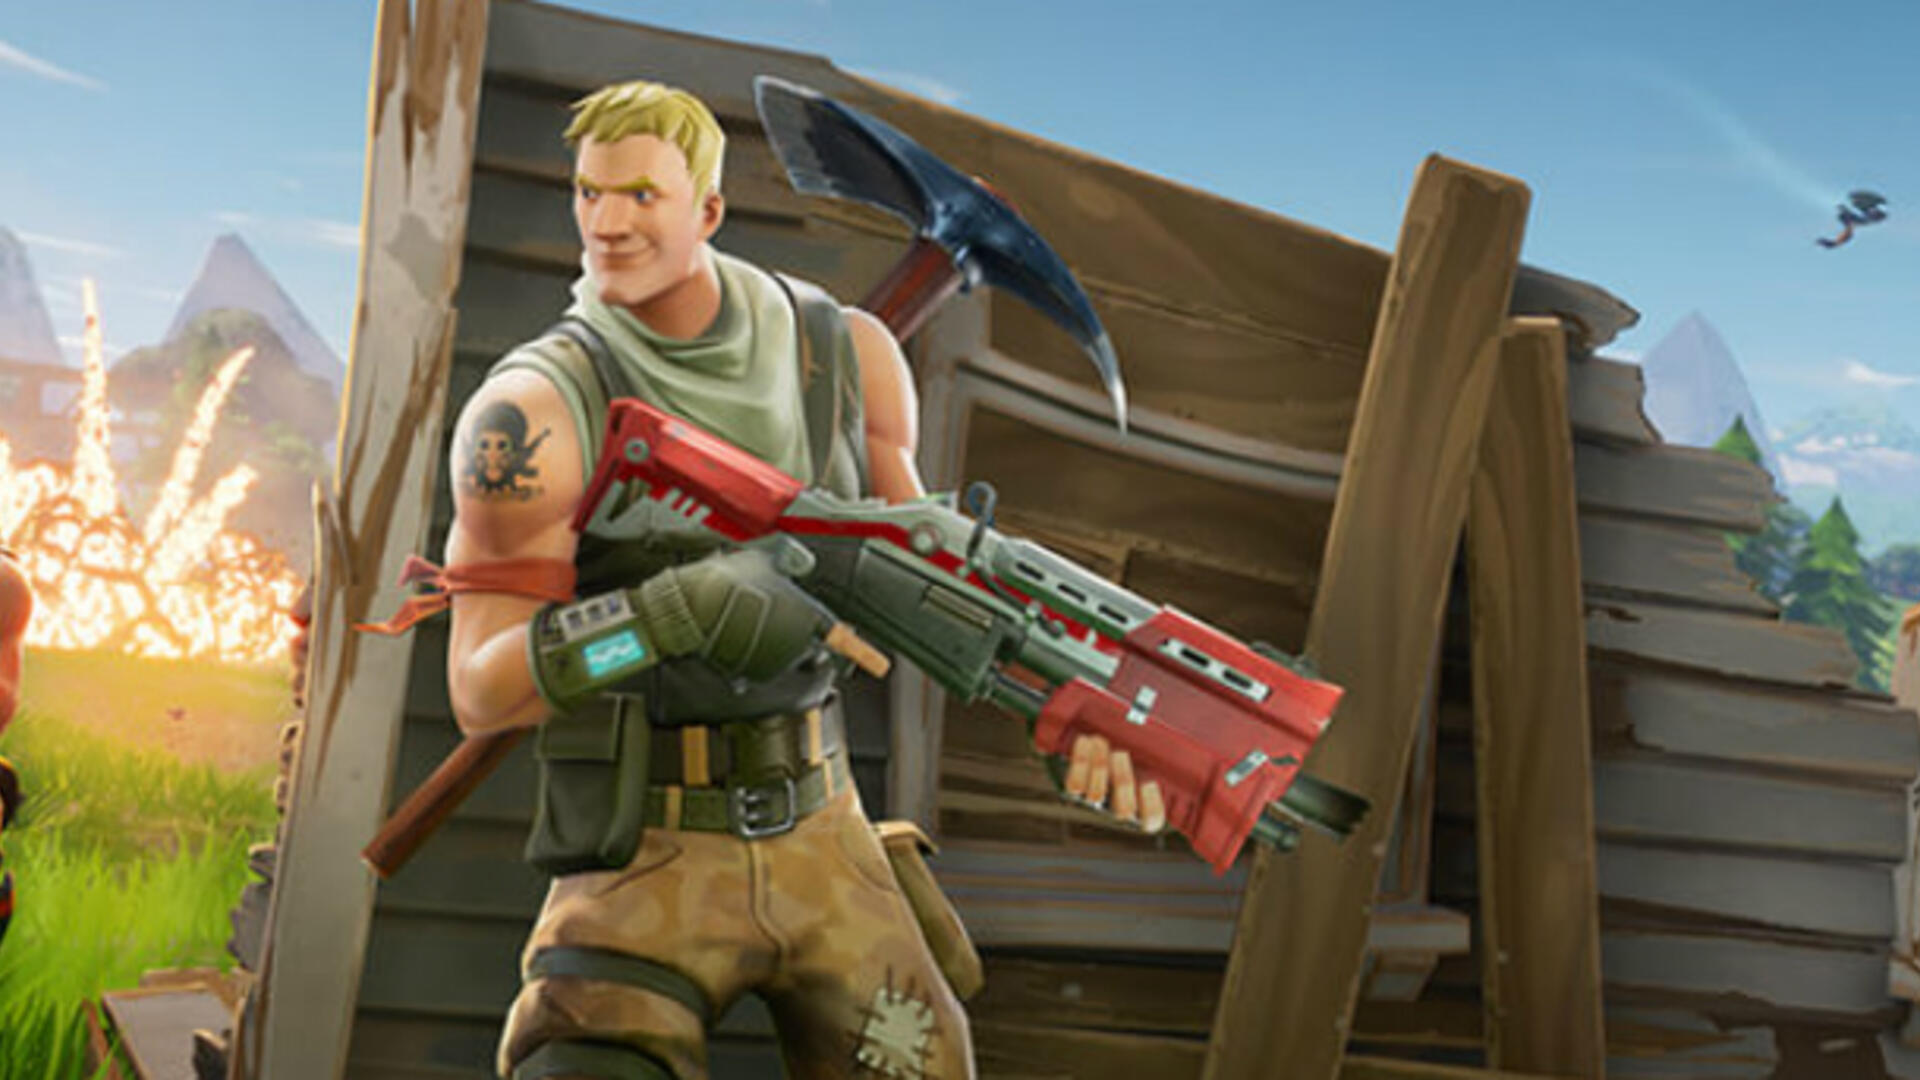 Epic Games is Now Worth $8 Billion Thanks to Fortnite's Continued Success